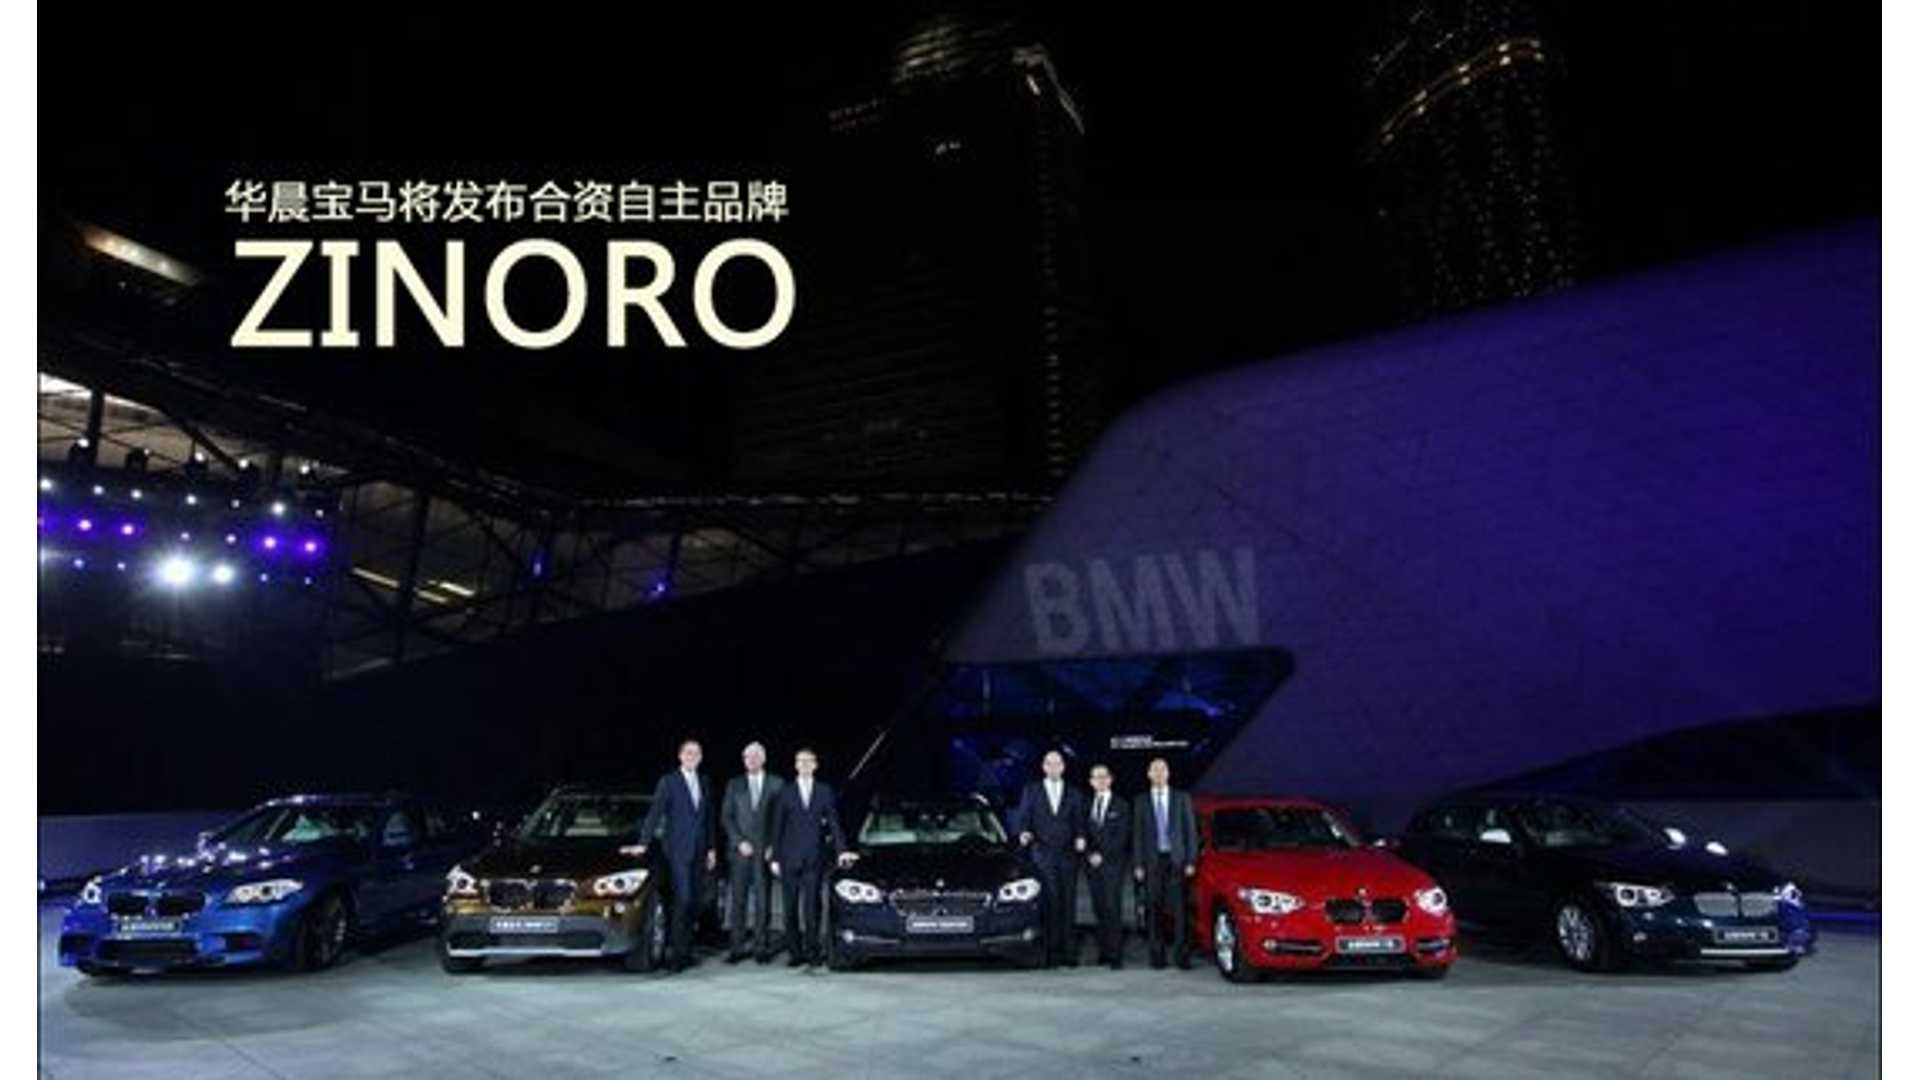 Electric Bmw Brilliance Zinoro 1e Offered As Lease Only Ev In China Insideevs Photos